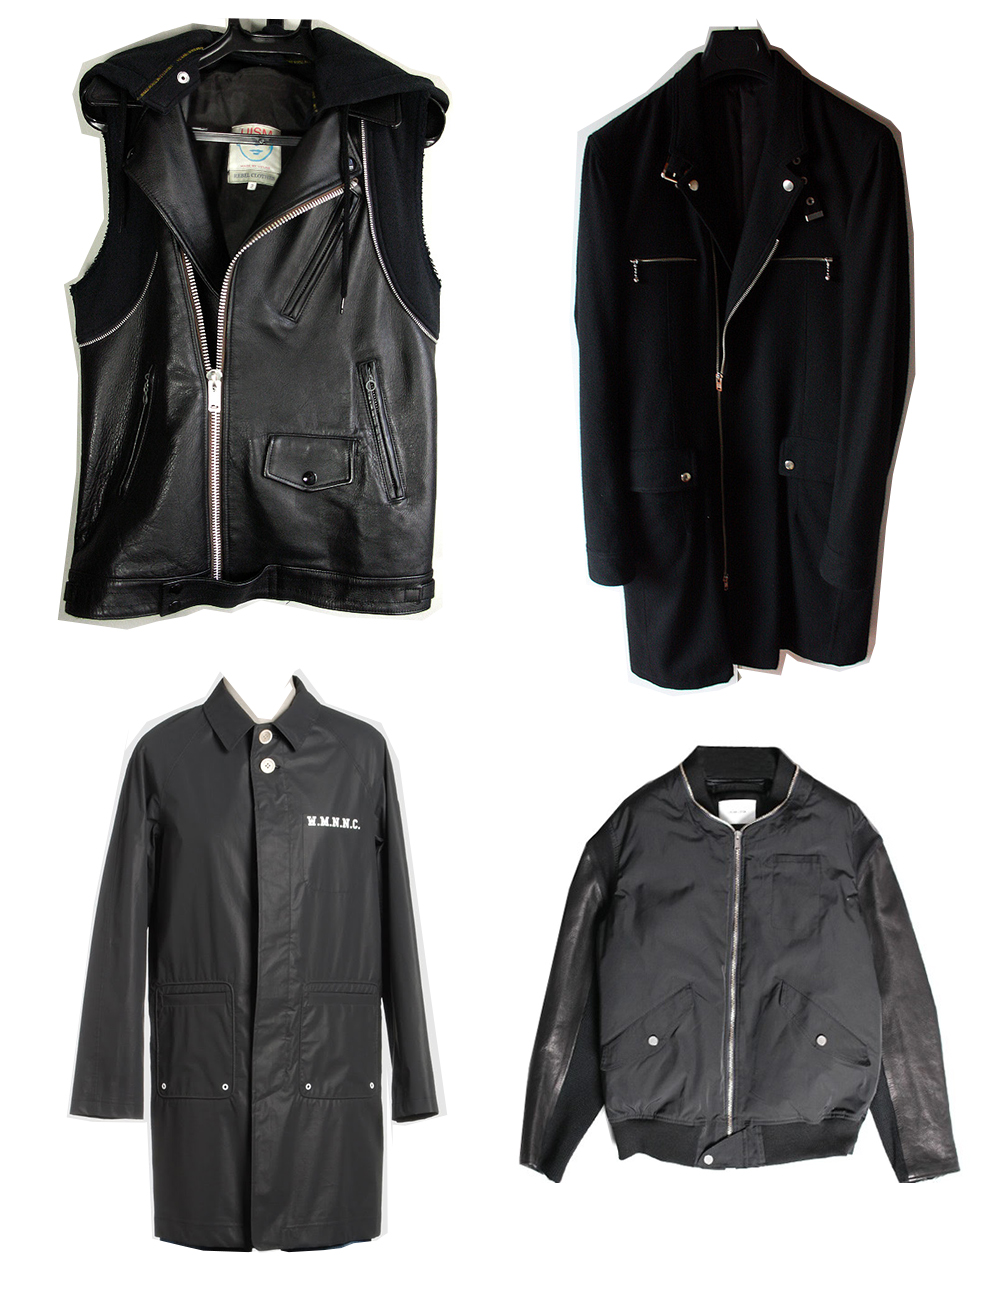 Tuukka13 - Inspiration - Undercoverism Jackets - Mood Board - 4